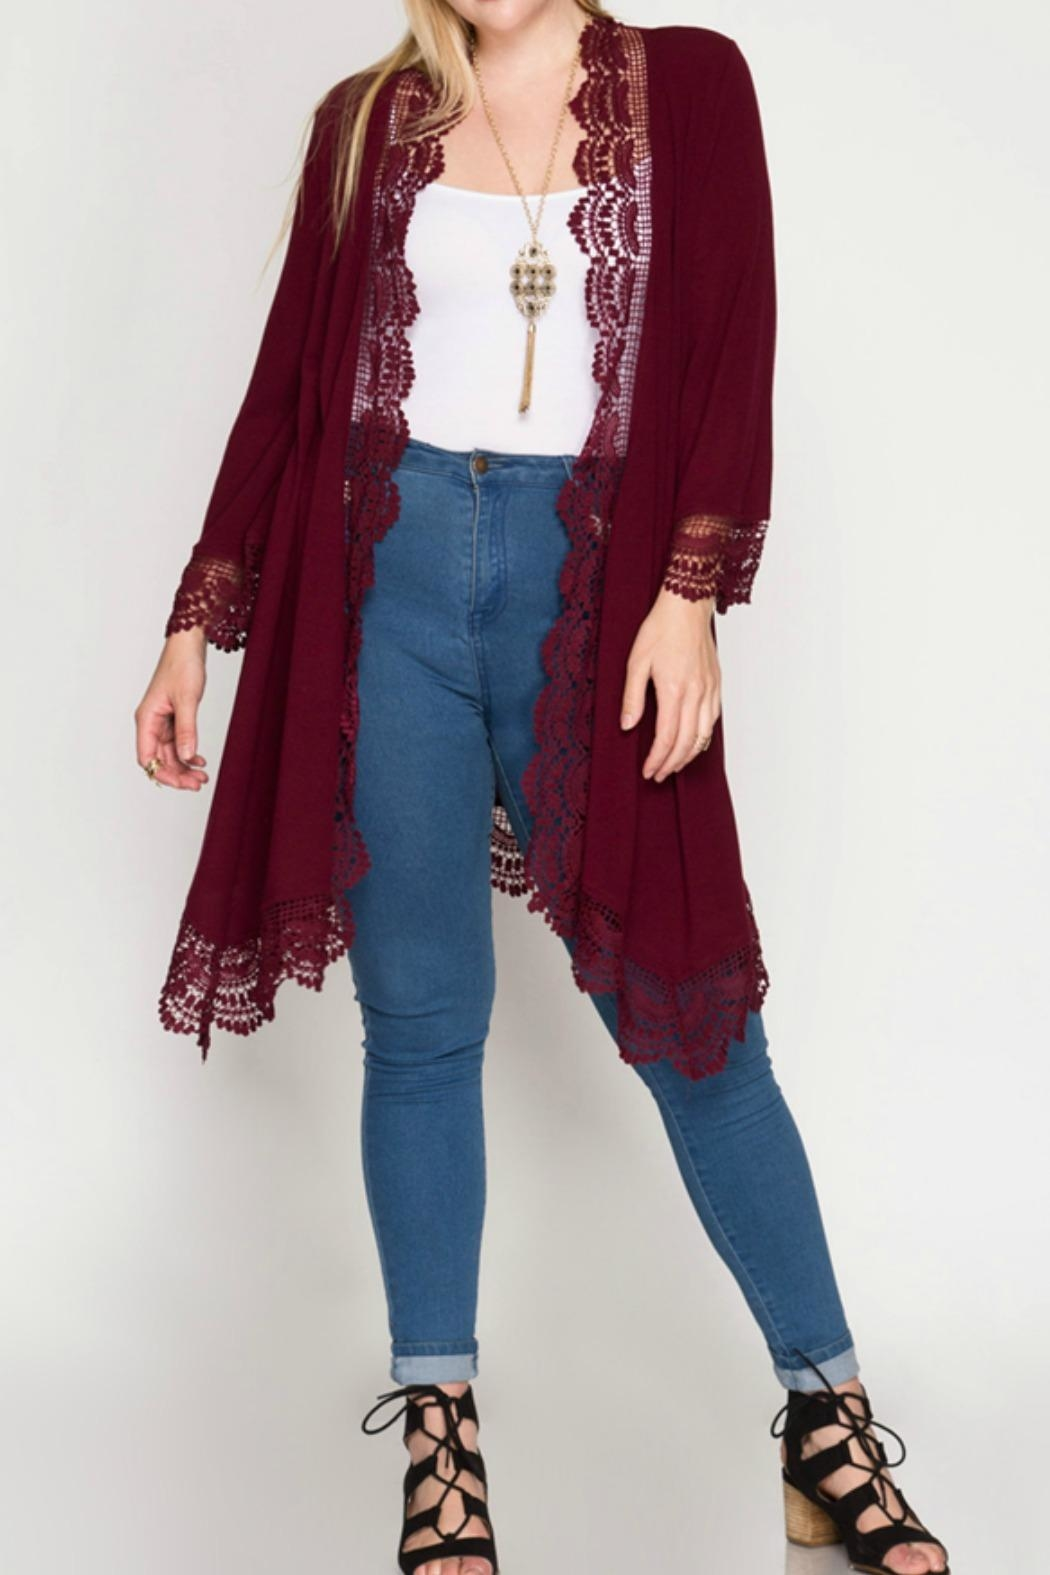 She   Sky Burgundy Lace Cardigan from Montana by Foxwood Boutique ...